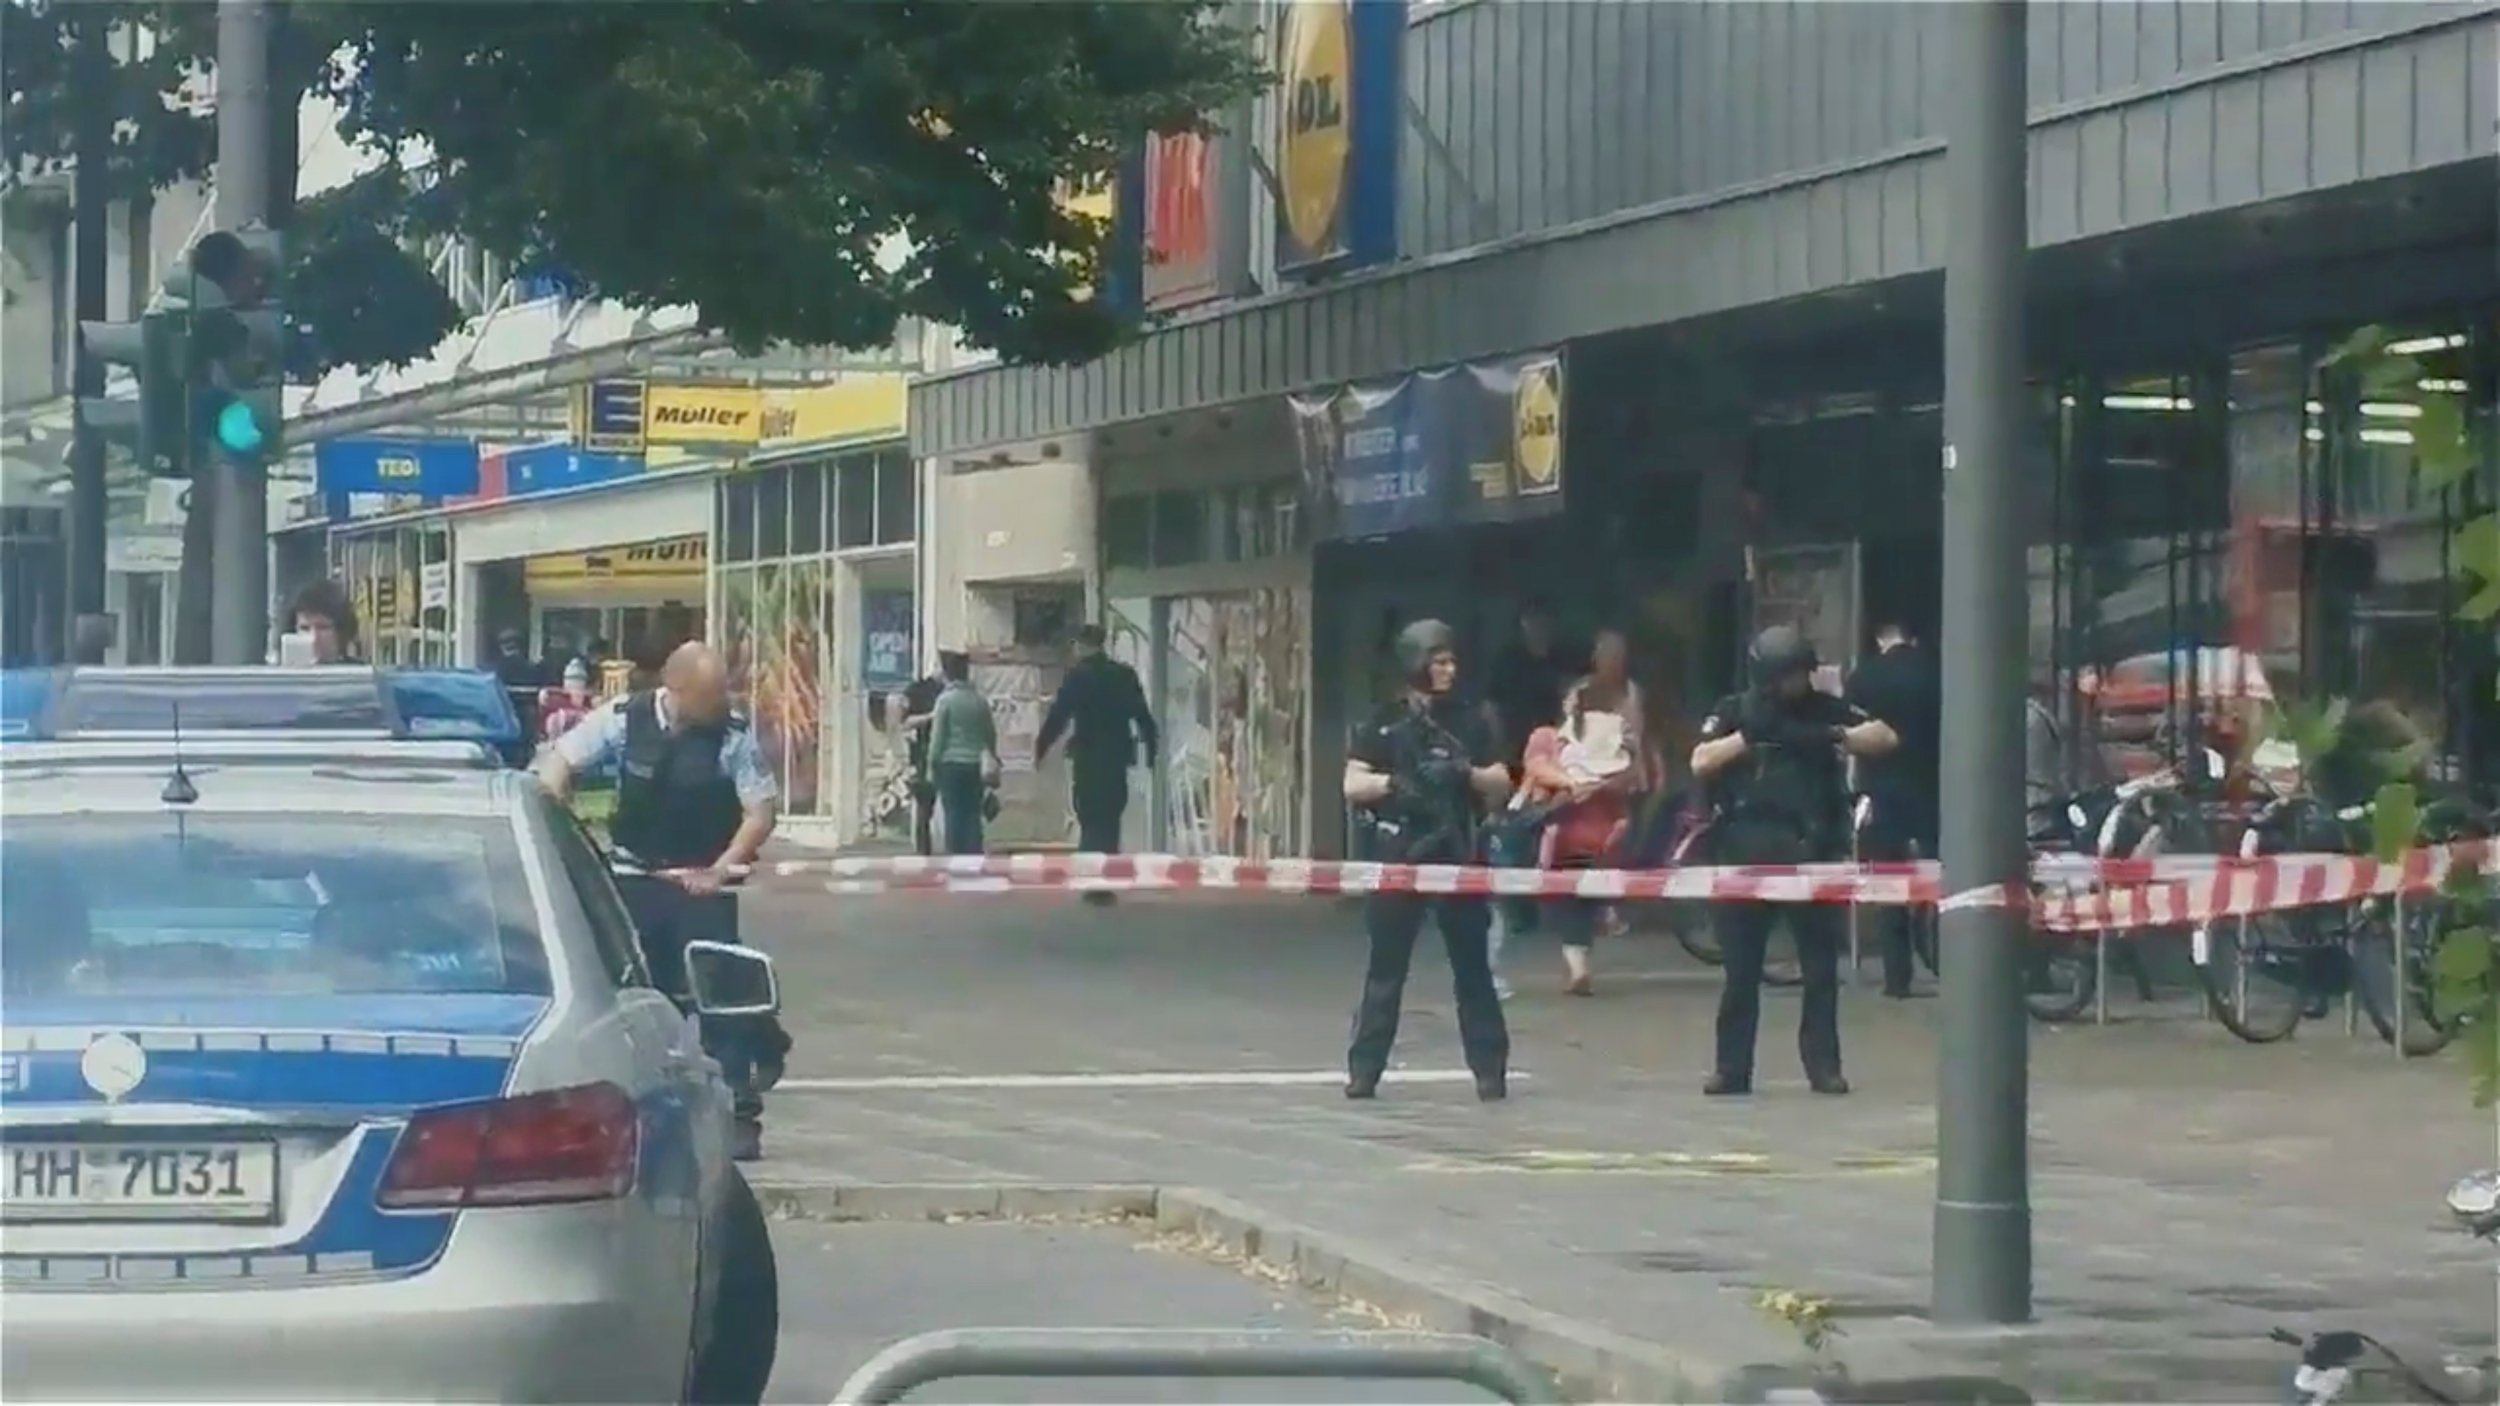 Knife Media Hamburg Attack One Dead After Knife Assault In Supermarket